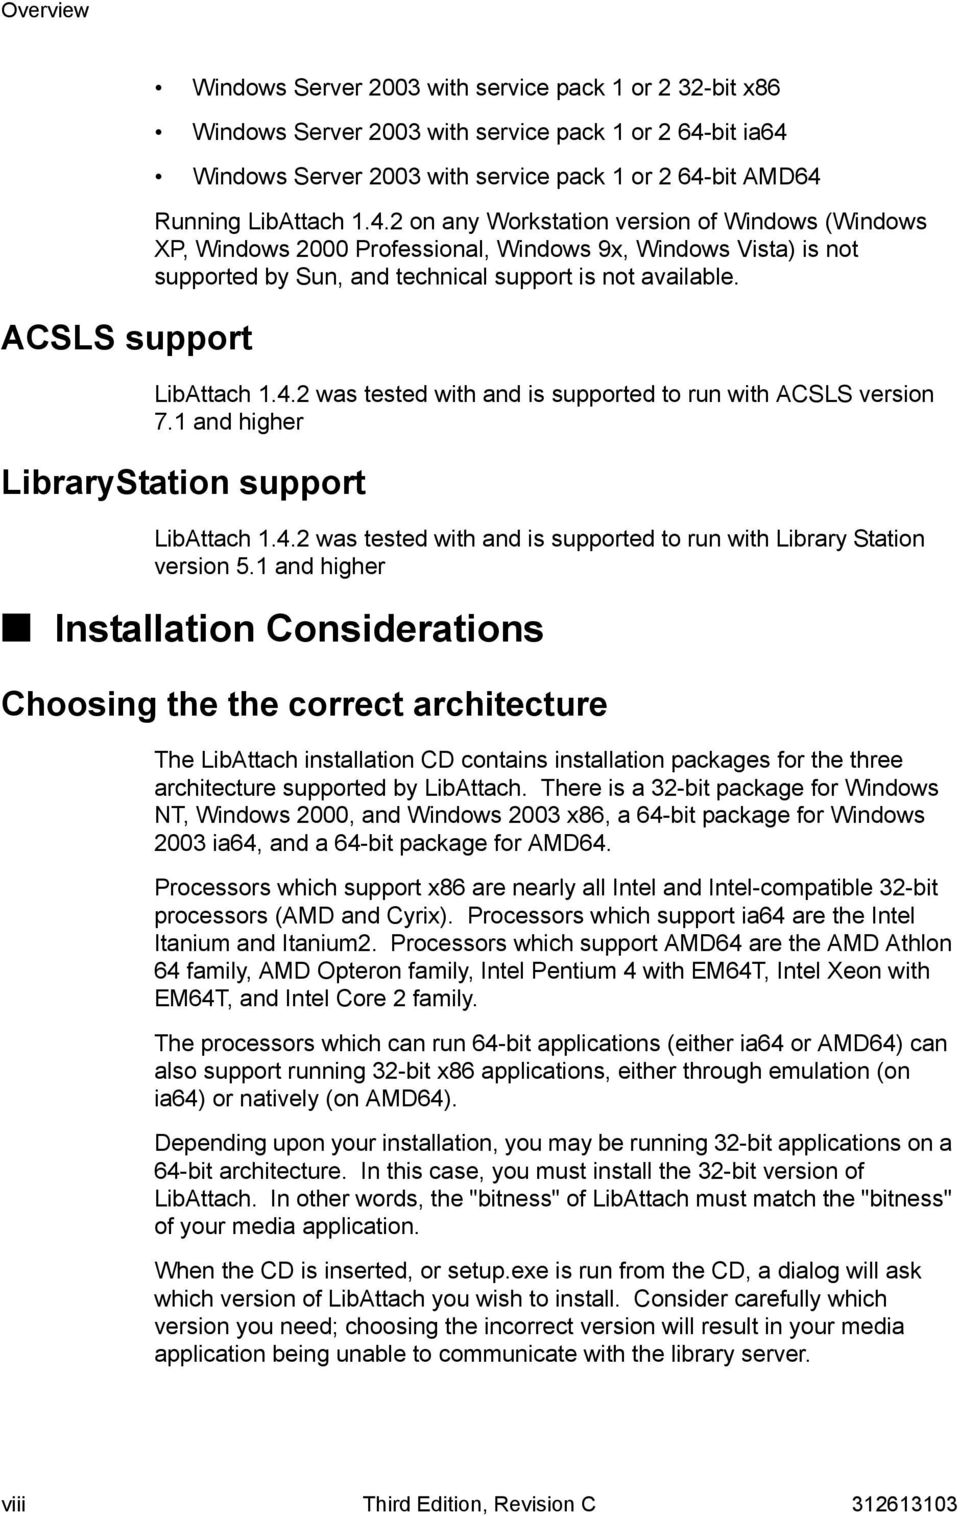 LibAttach 1.4.2 was tested with and is supported to run with ACSLS version 7.1 and higher LibraryStation support LibAttach 1.4.2 was tested with and is supported to run with Library Station version 5.